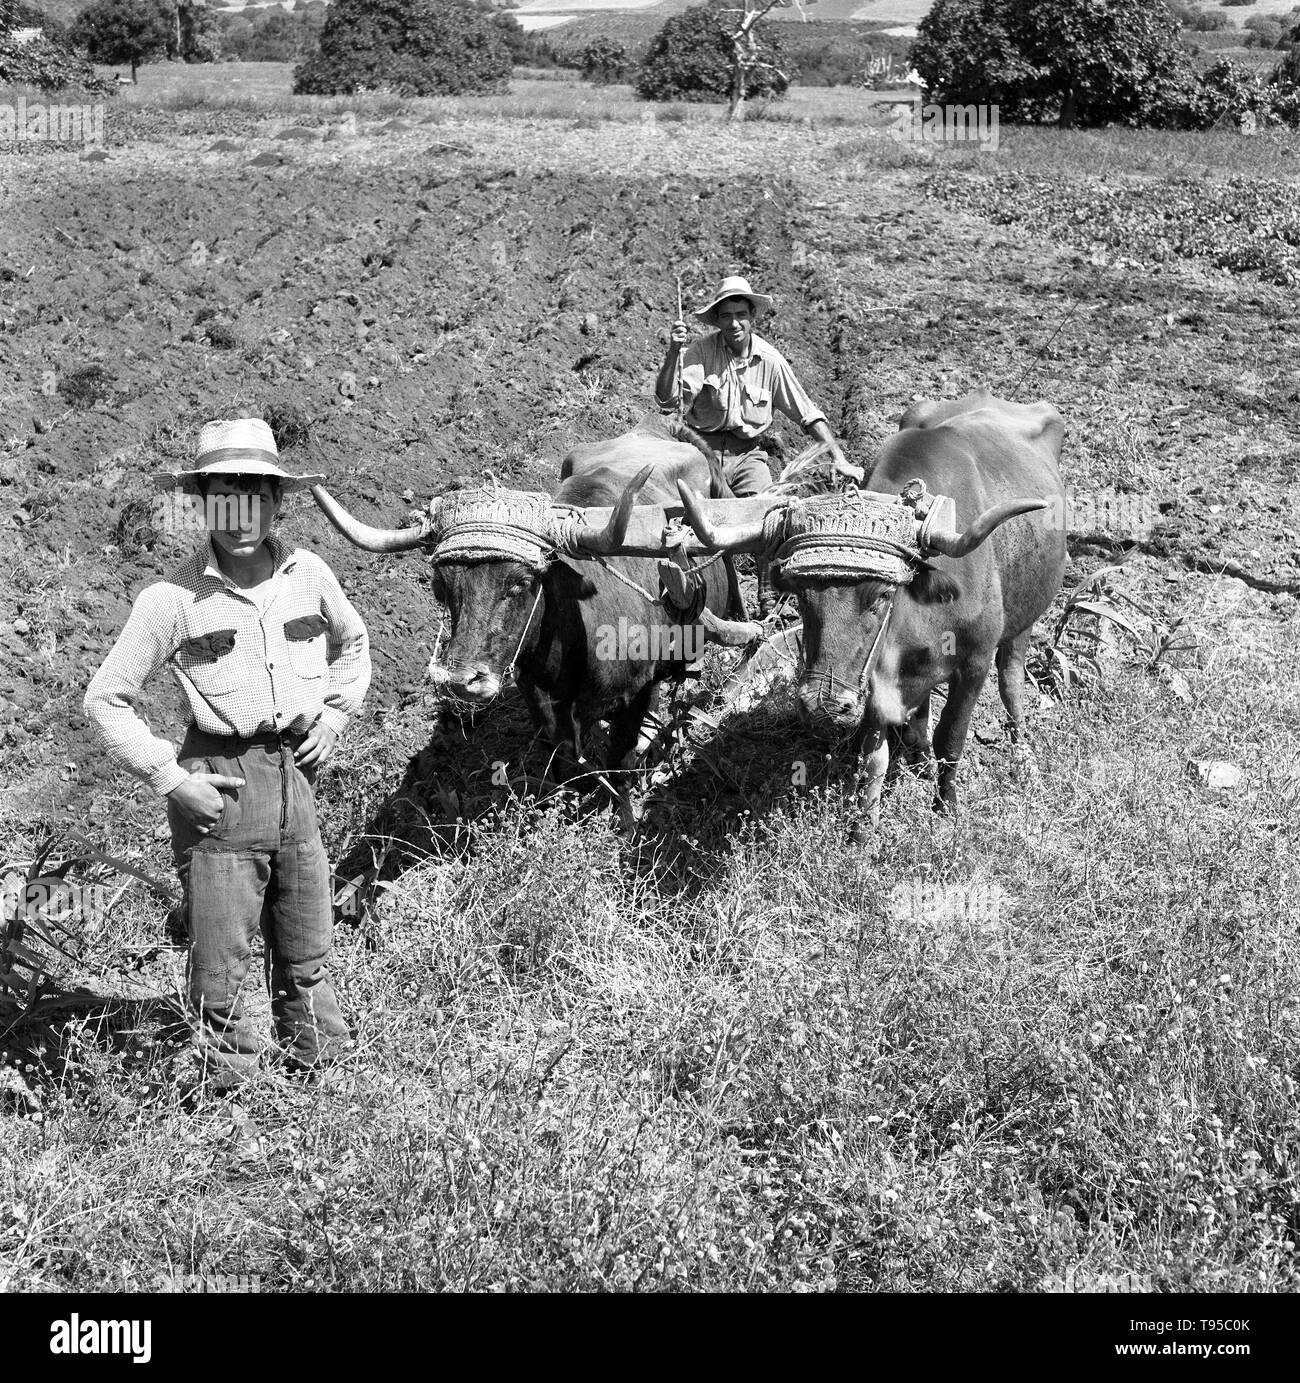 Spanish Farmers farming ploughing with Oxen Andalusia Spain 1950s - Stock Image